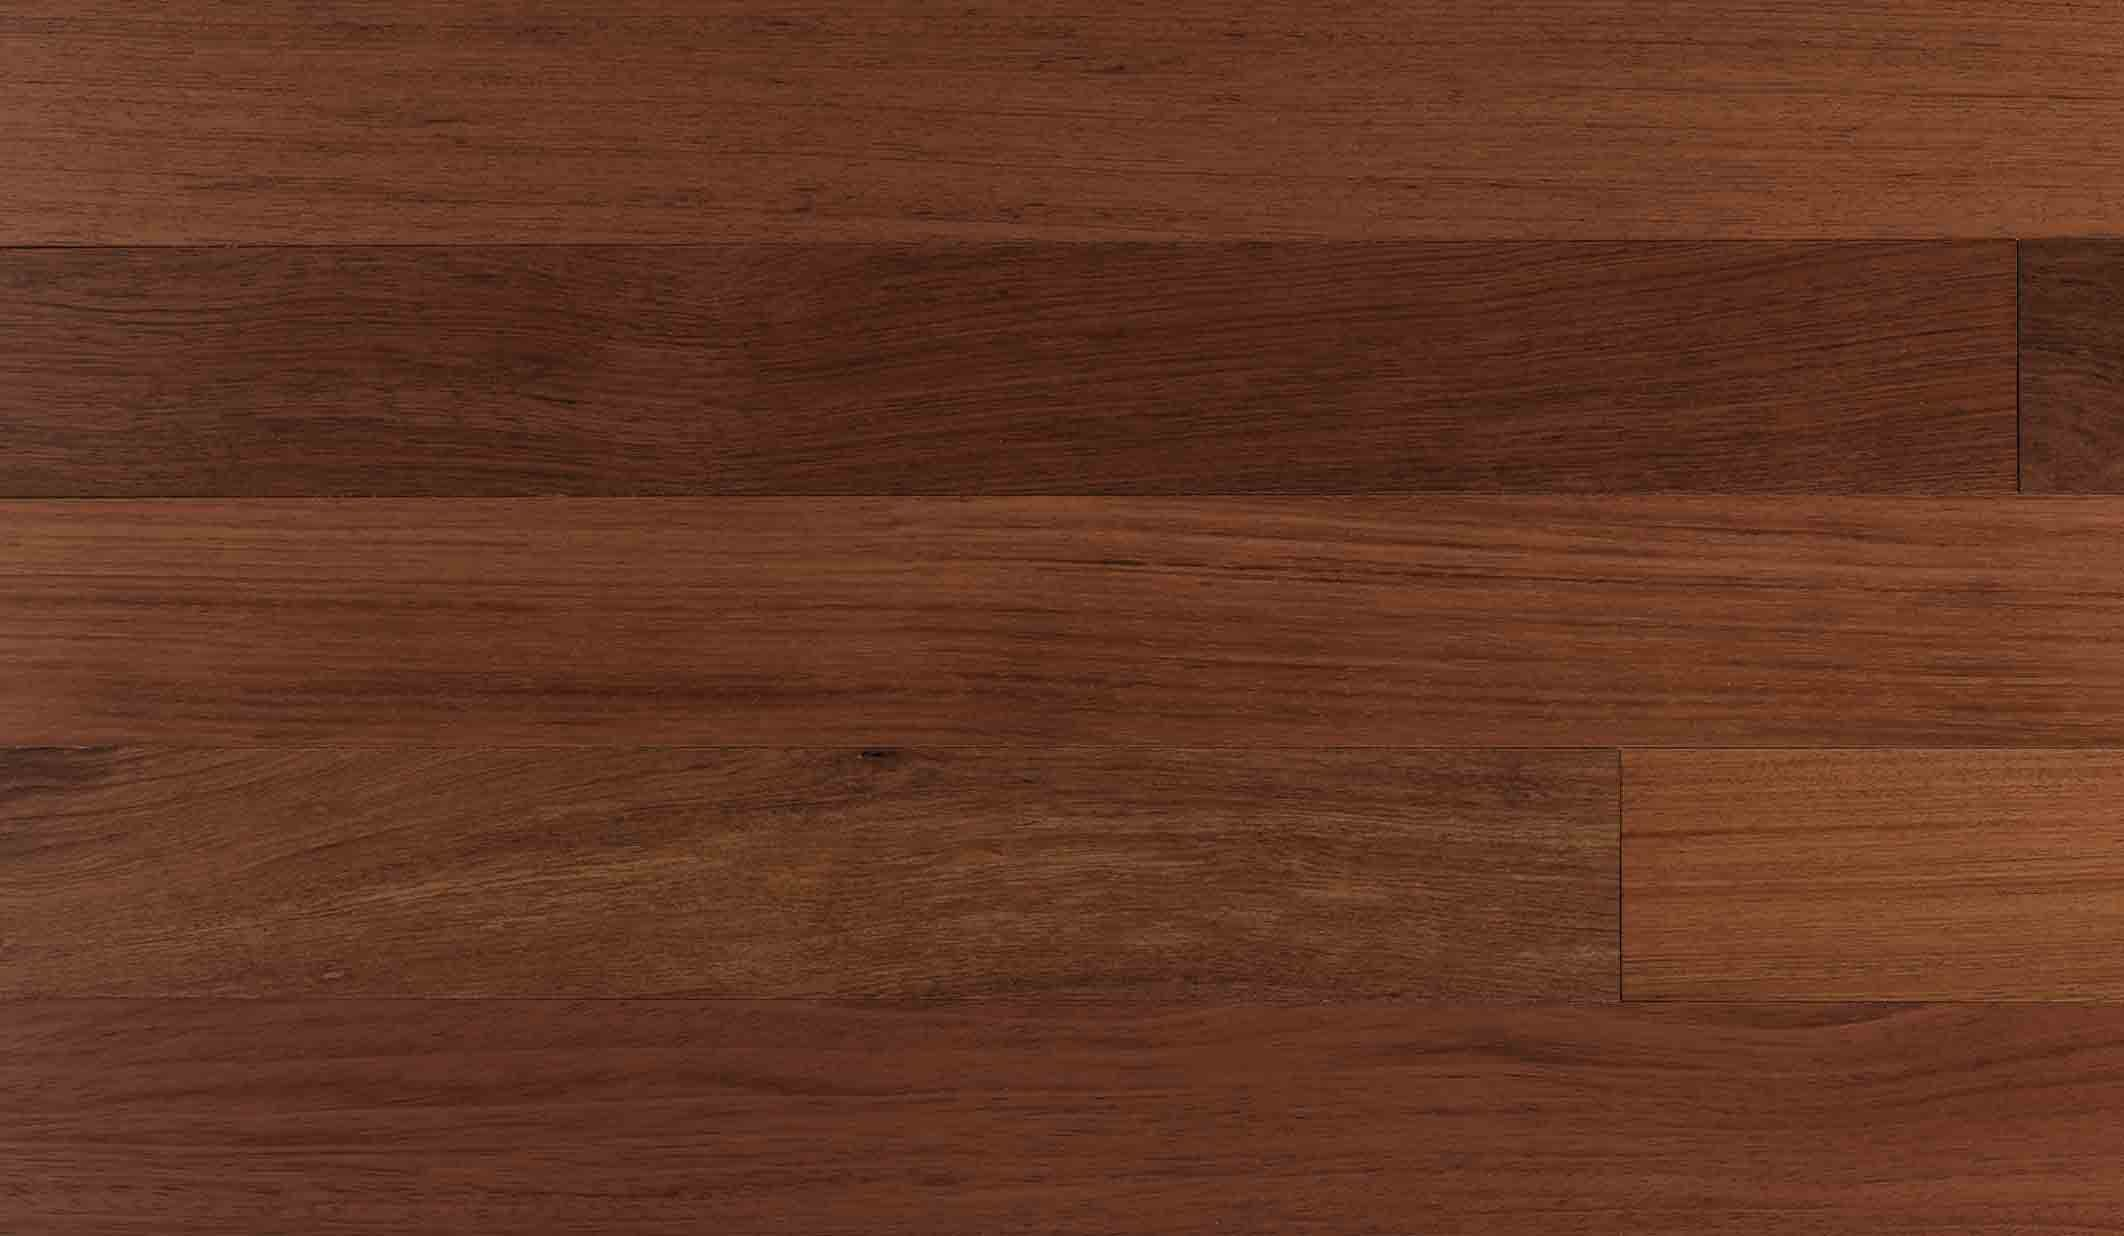 Seamless Dark Wood Floor Texture Design Ideas 11913 Floor Ideas